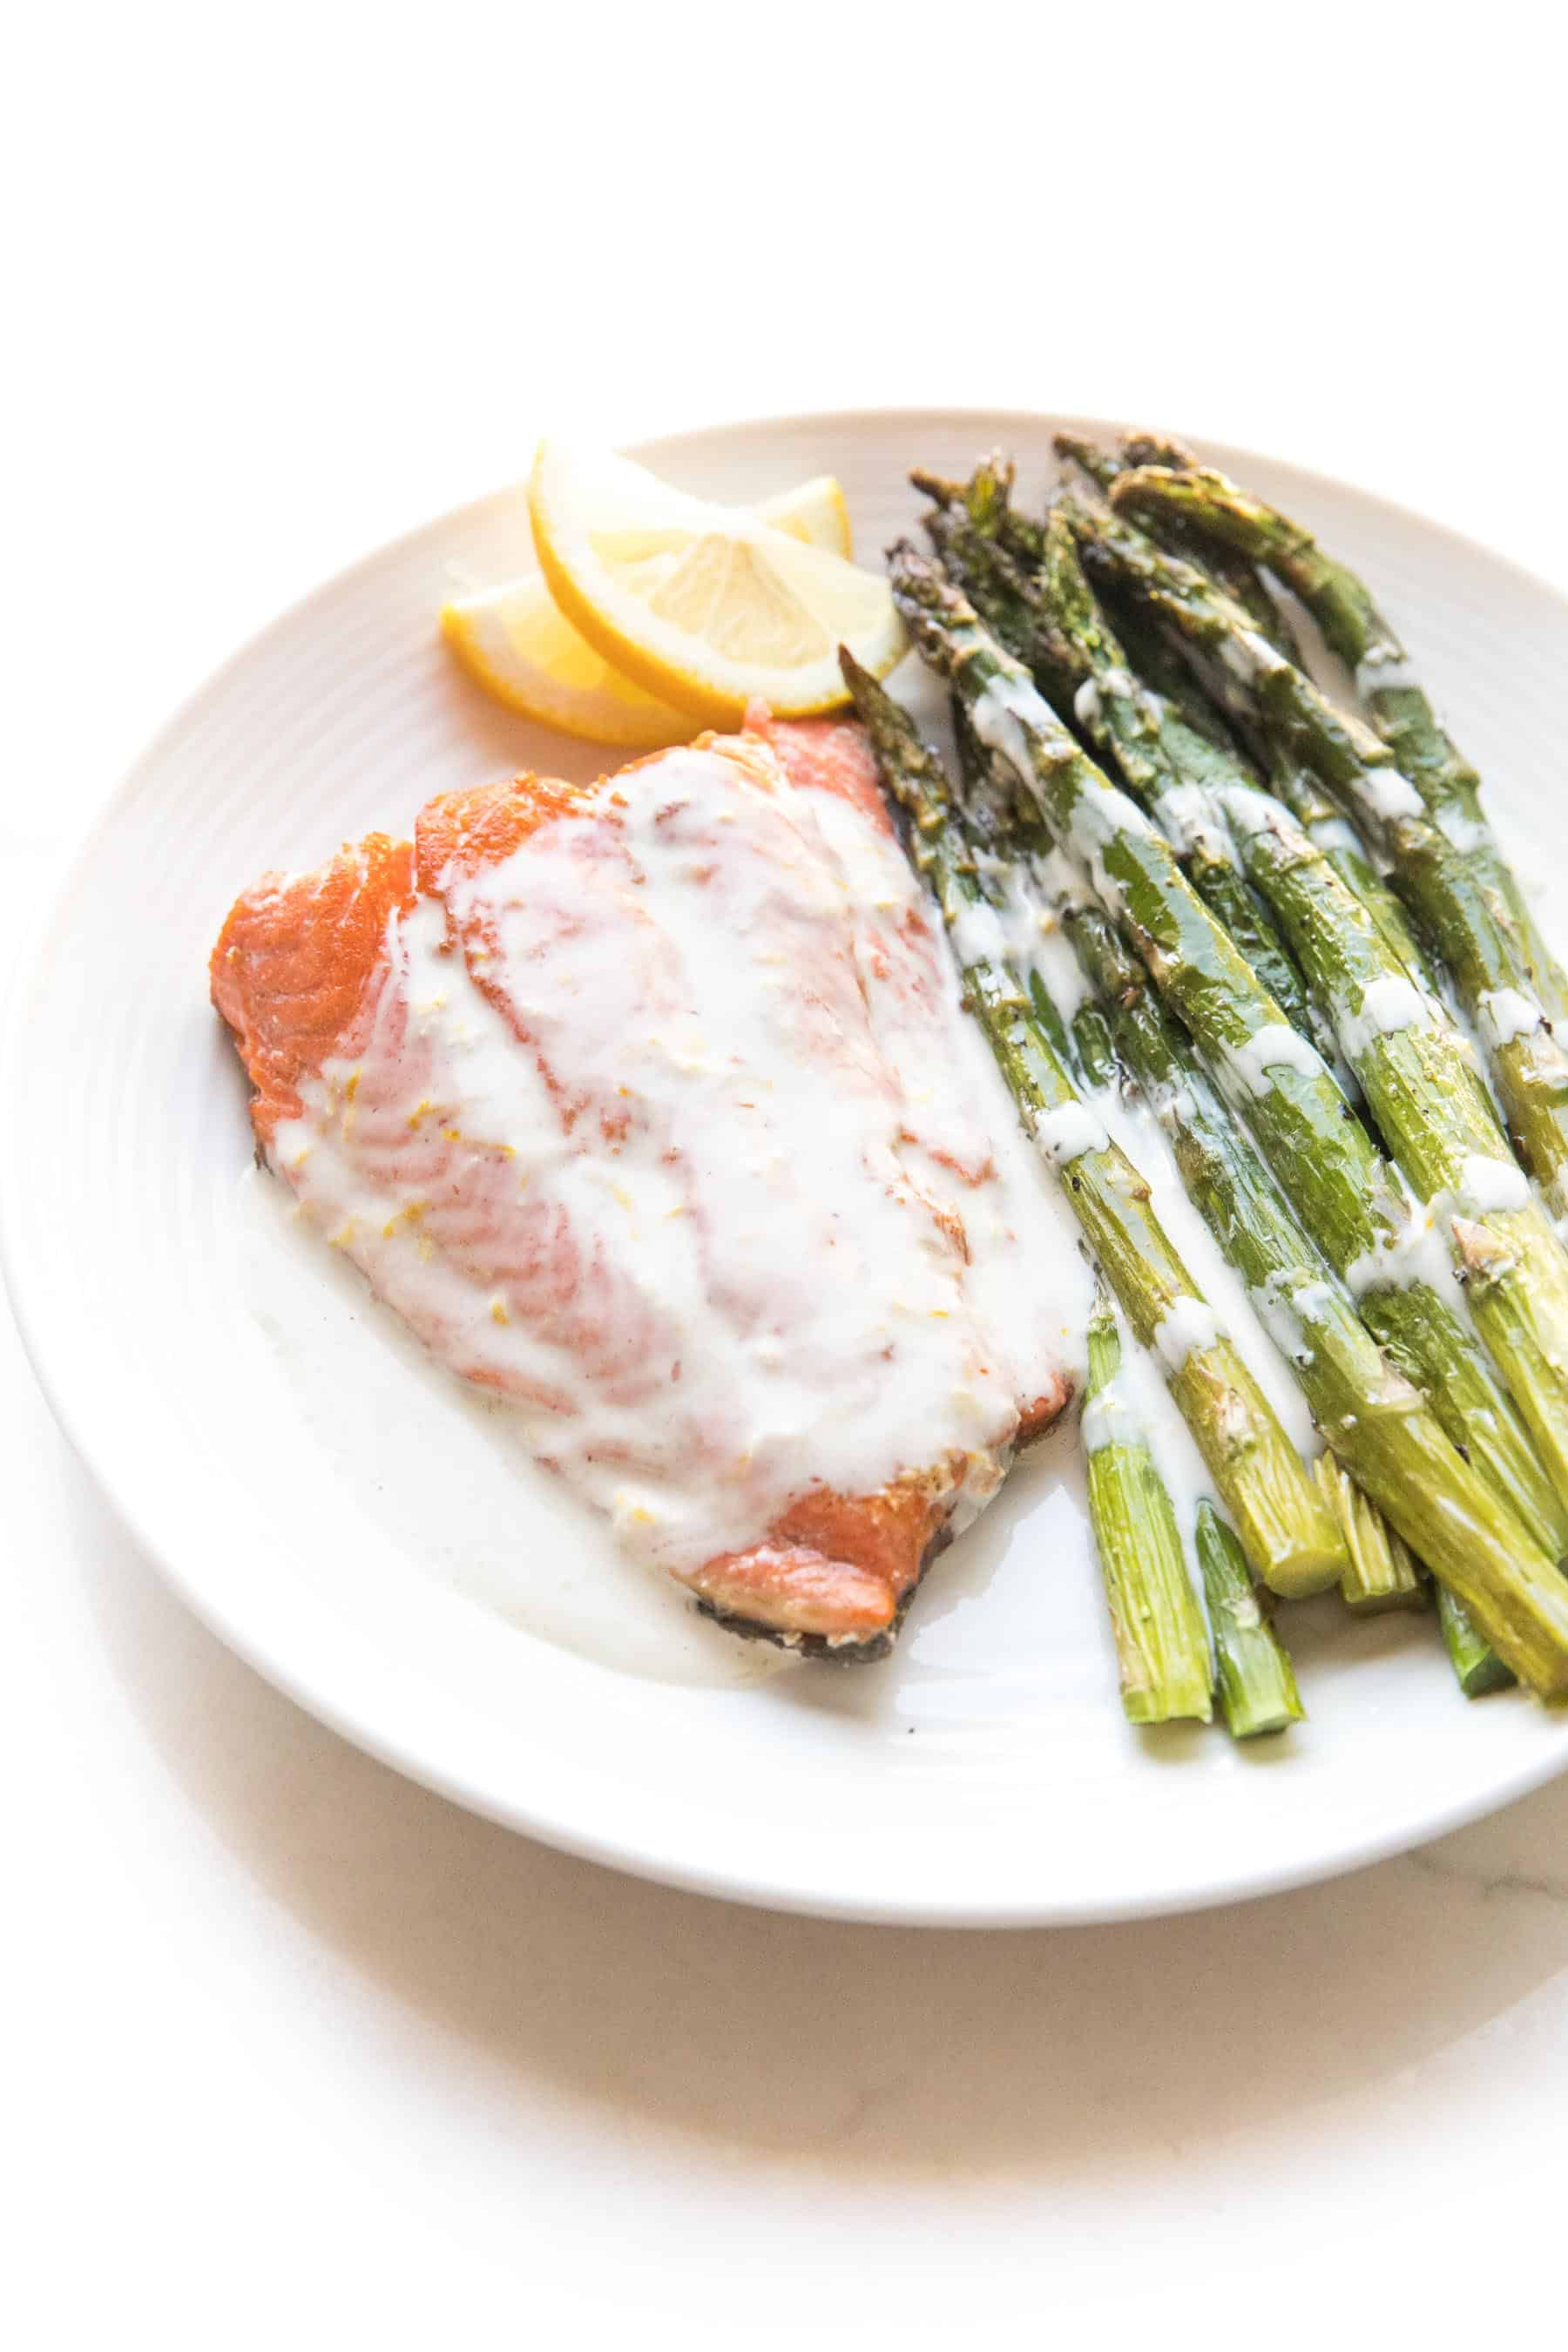 Salmon + asparagus with a white creamy coconut tahini sauce on a white plate and background